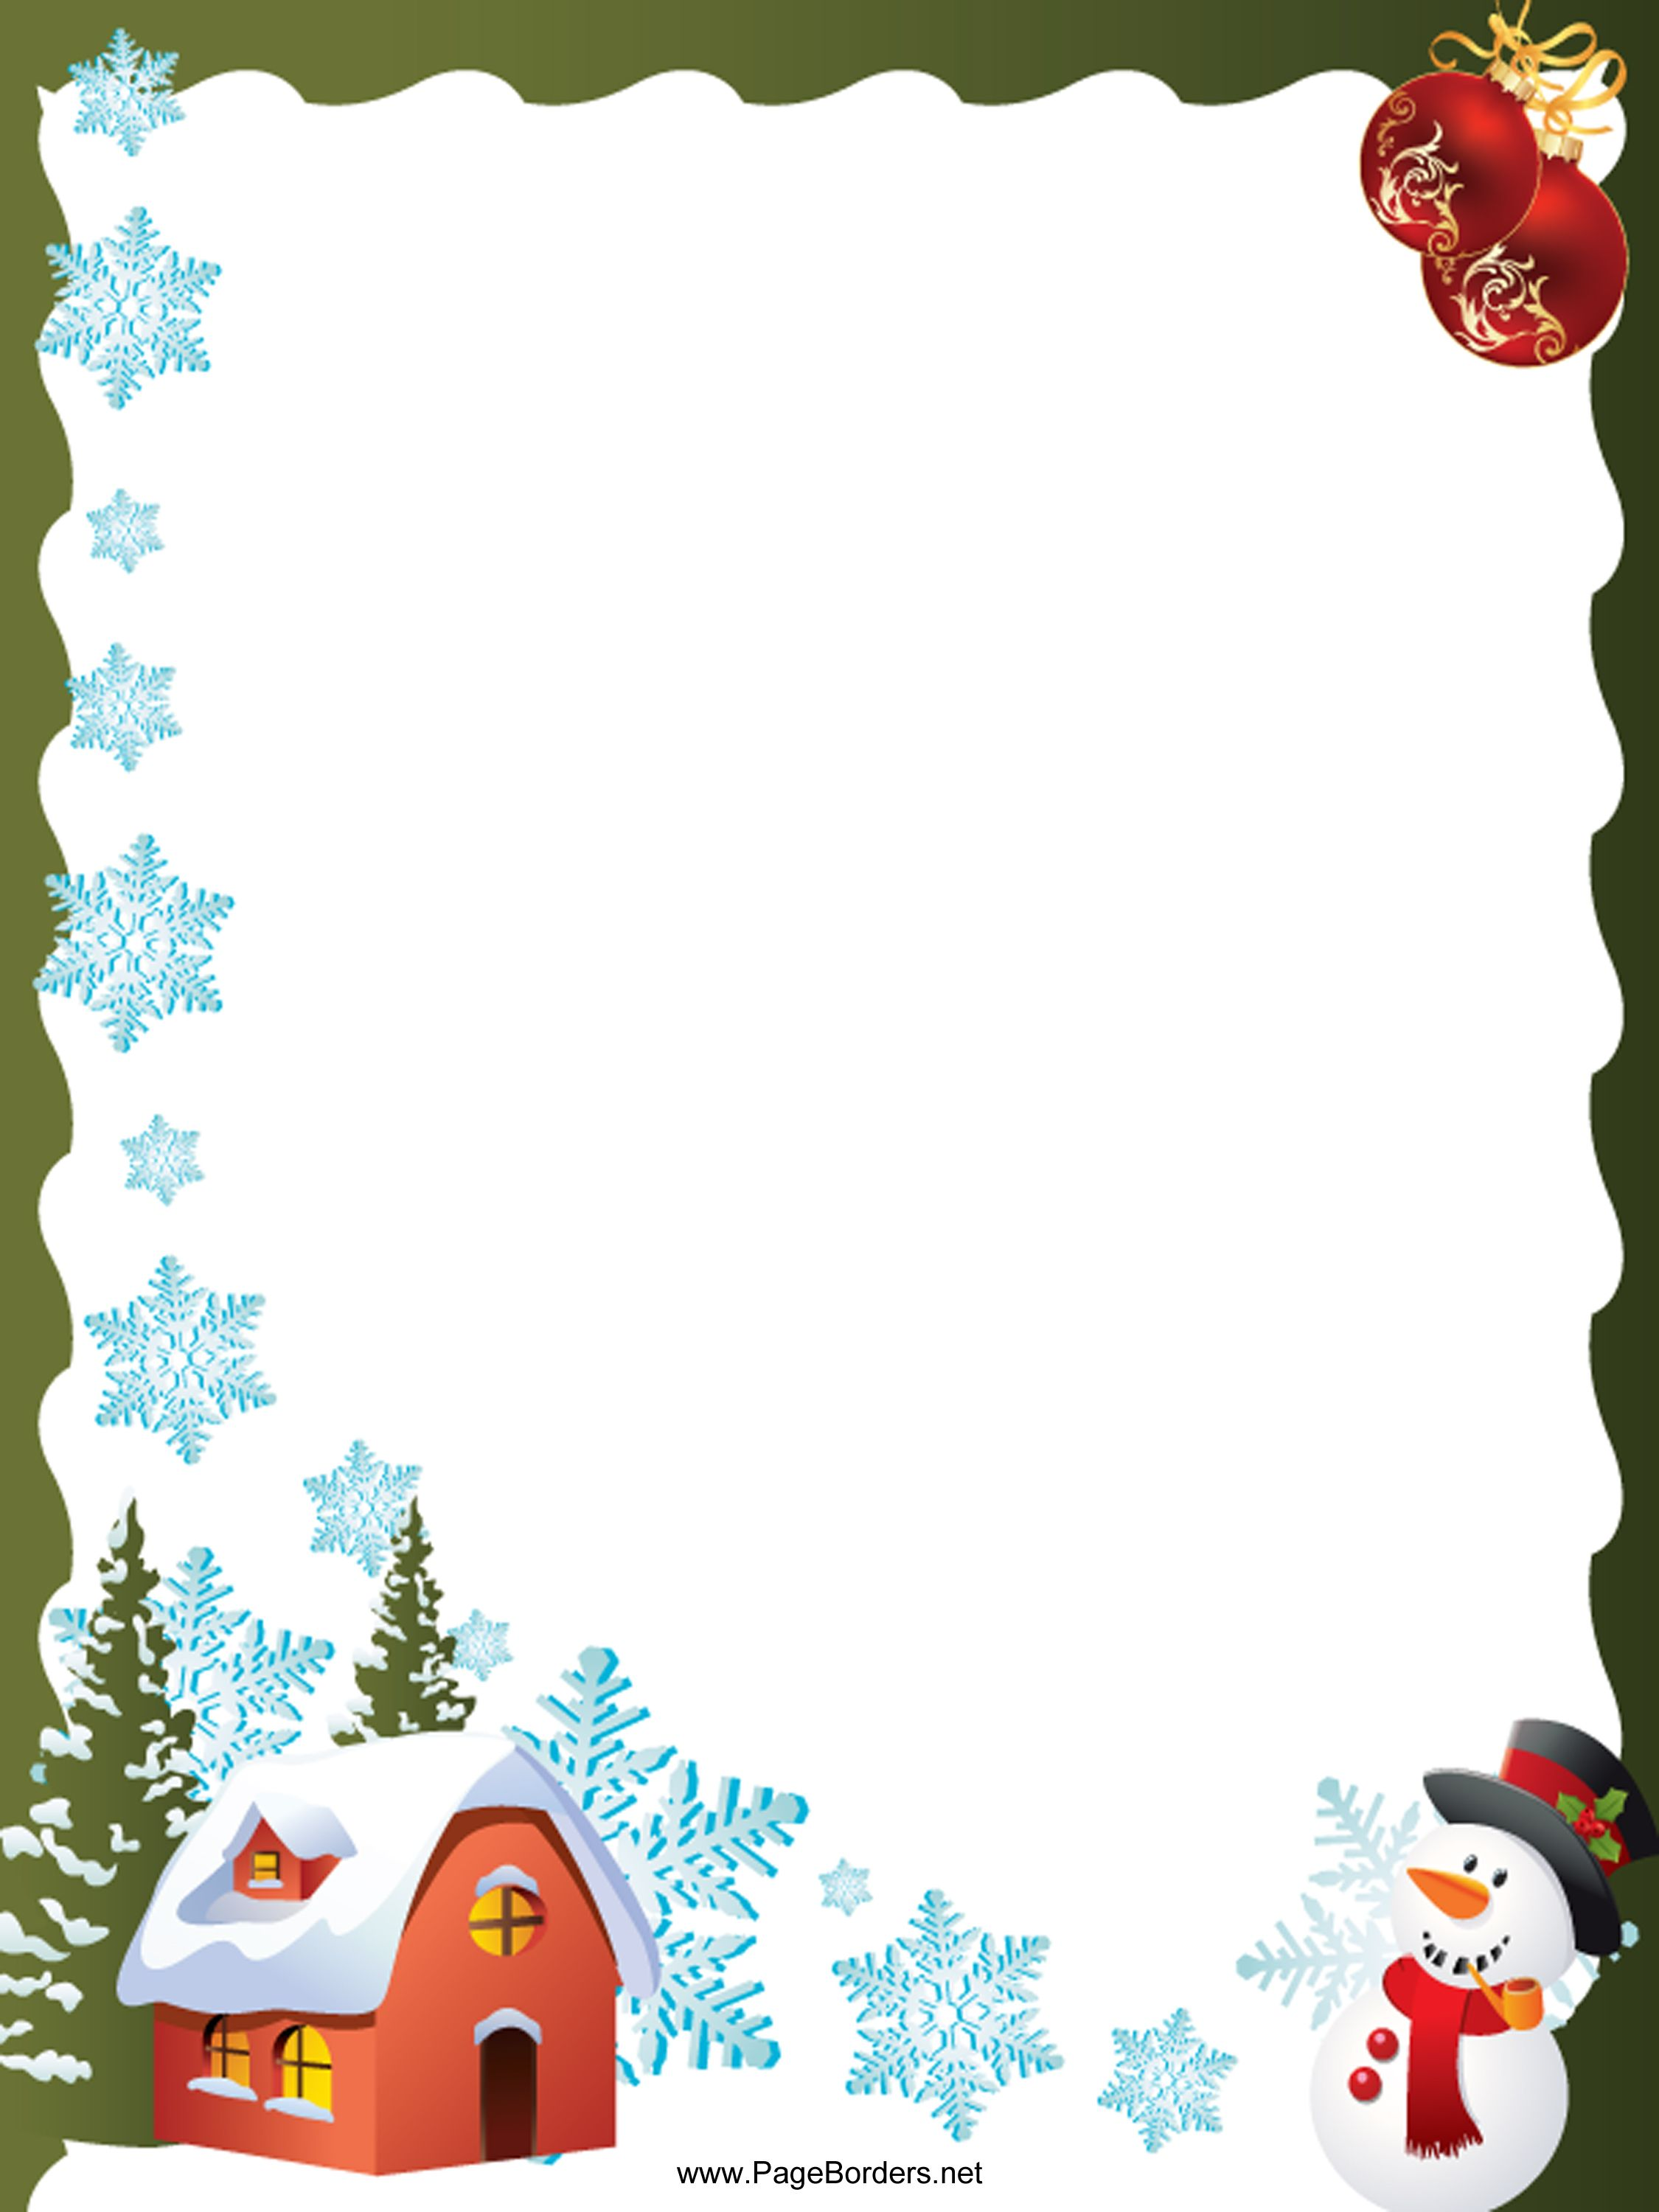 formats pdf jpg png art pinterest christmas border